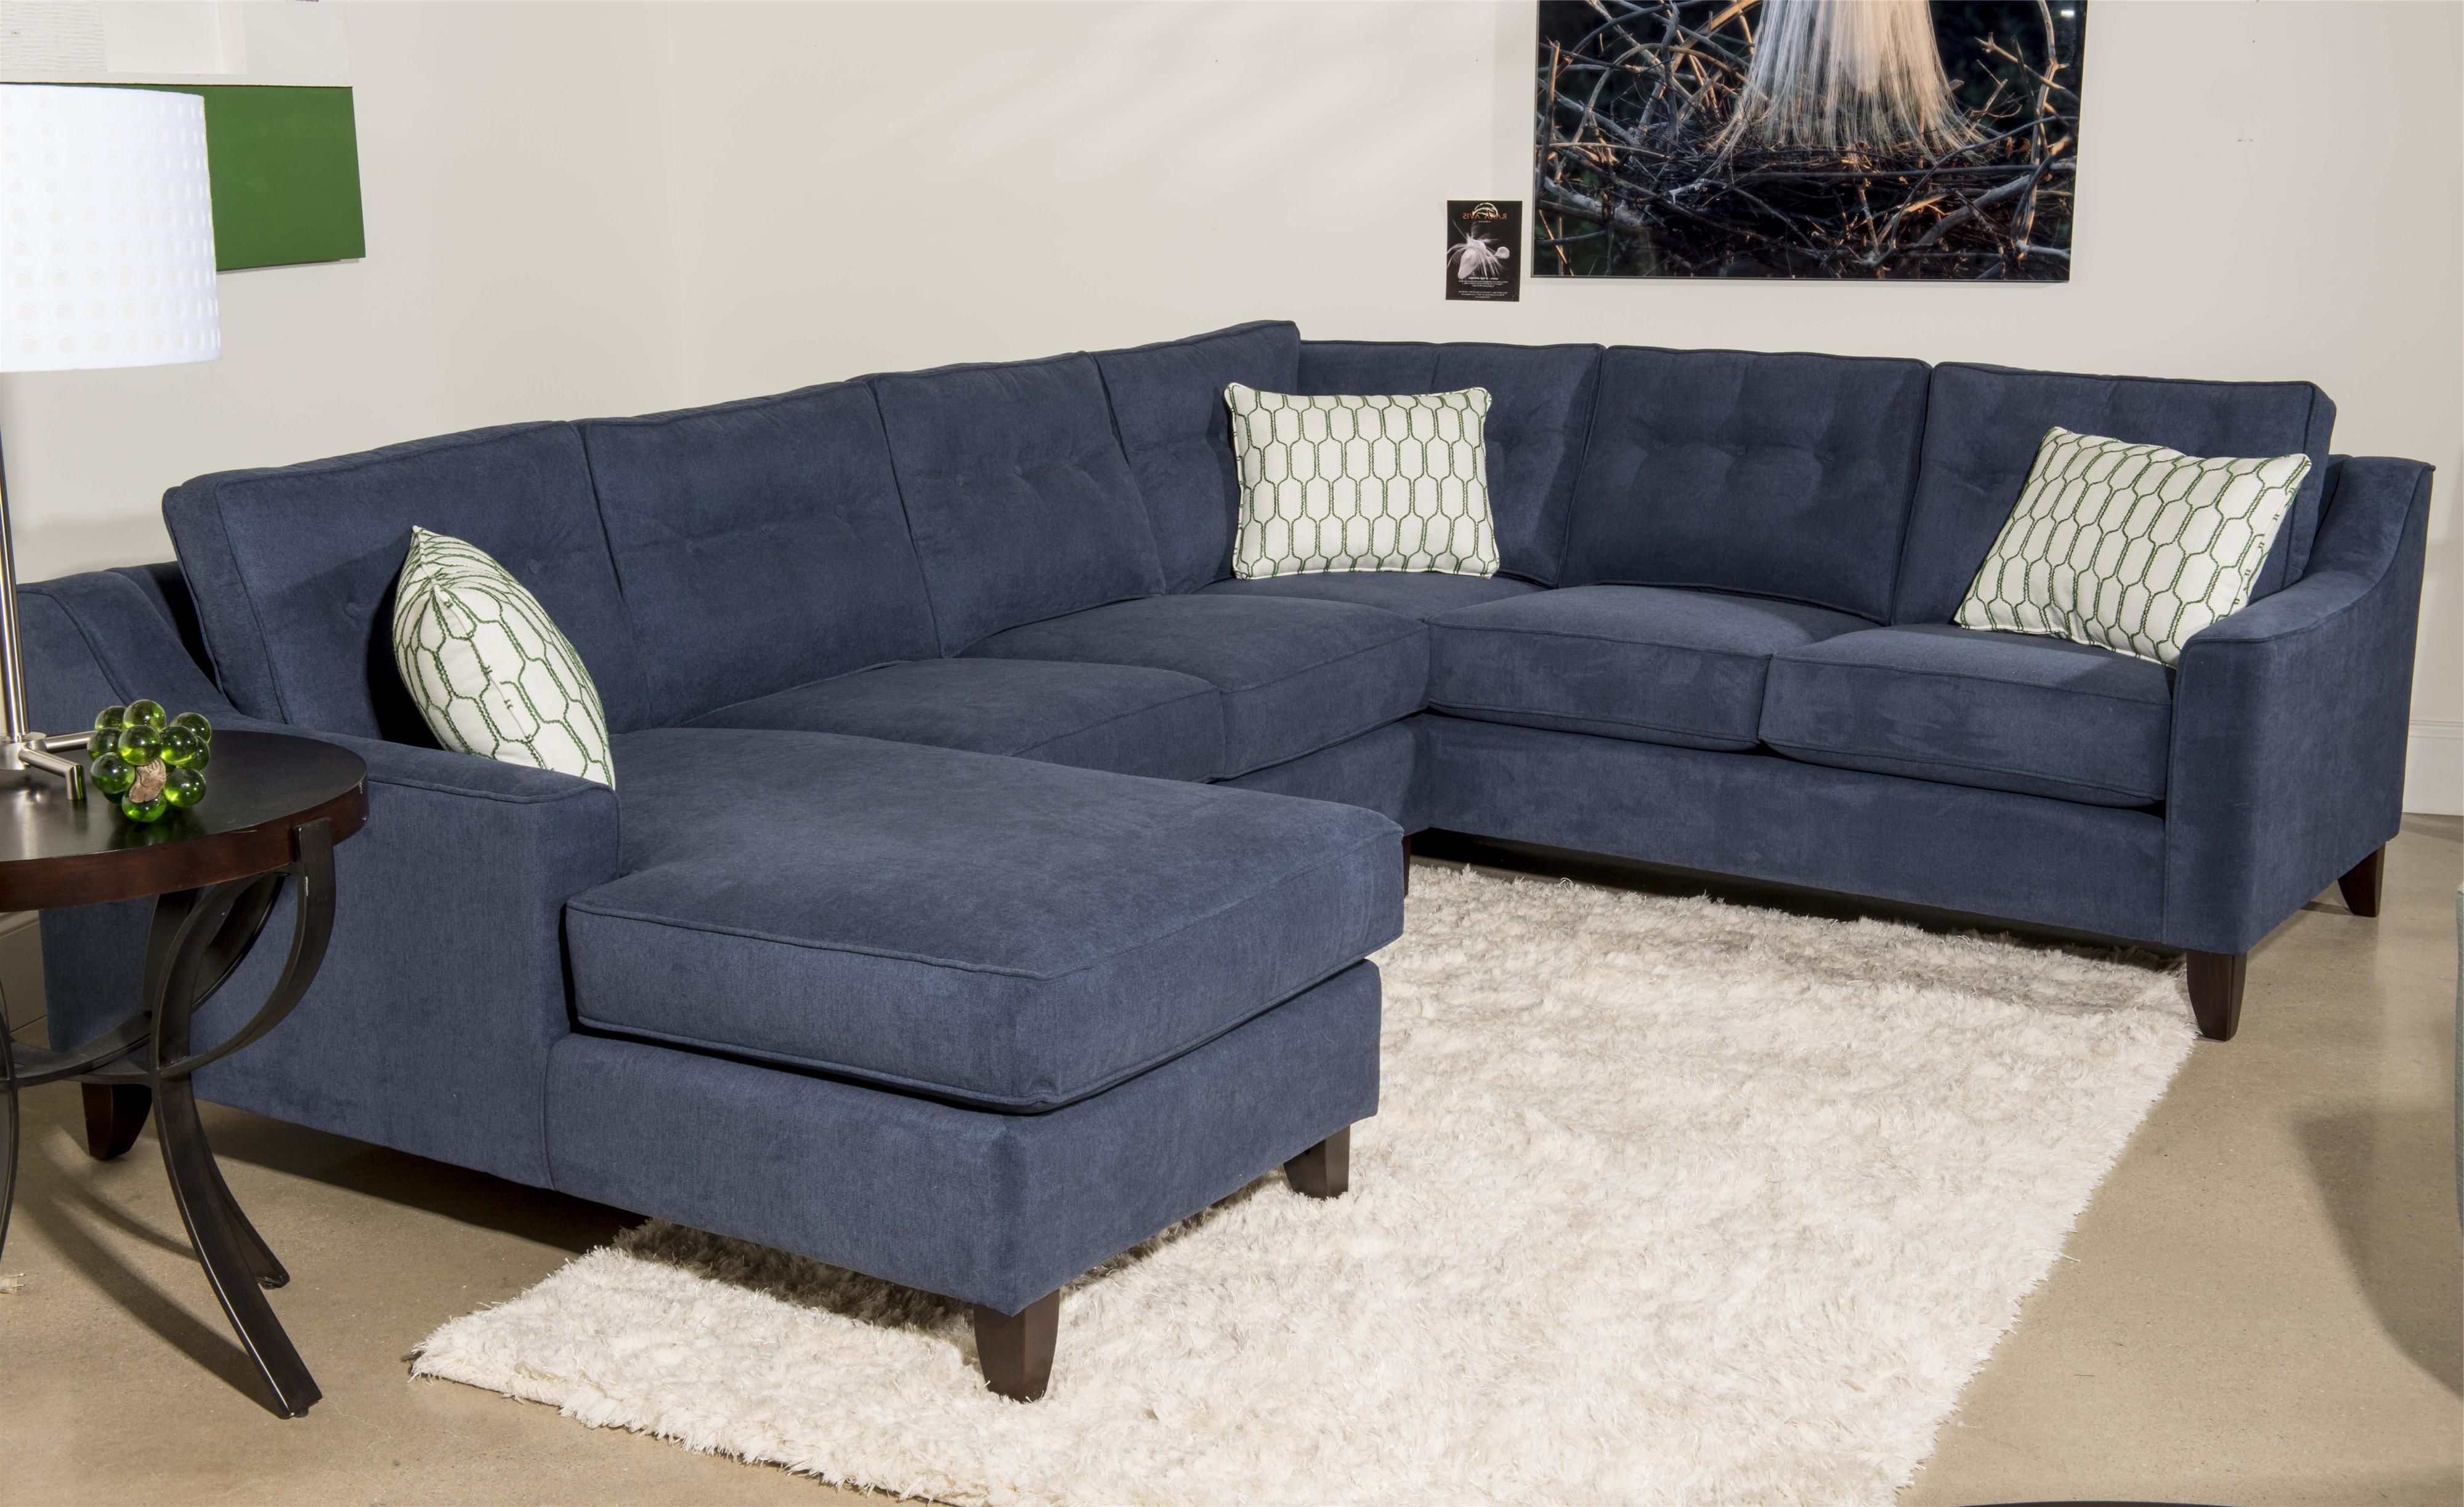 Sectional Sofas With Chaise In Well Liked Costco Living Room Furniture Small Sectional Sofas For Small (View 13 of 20)